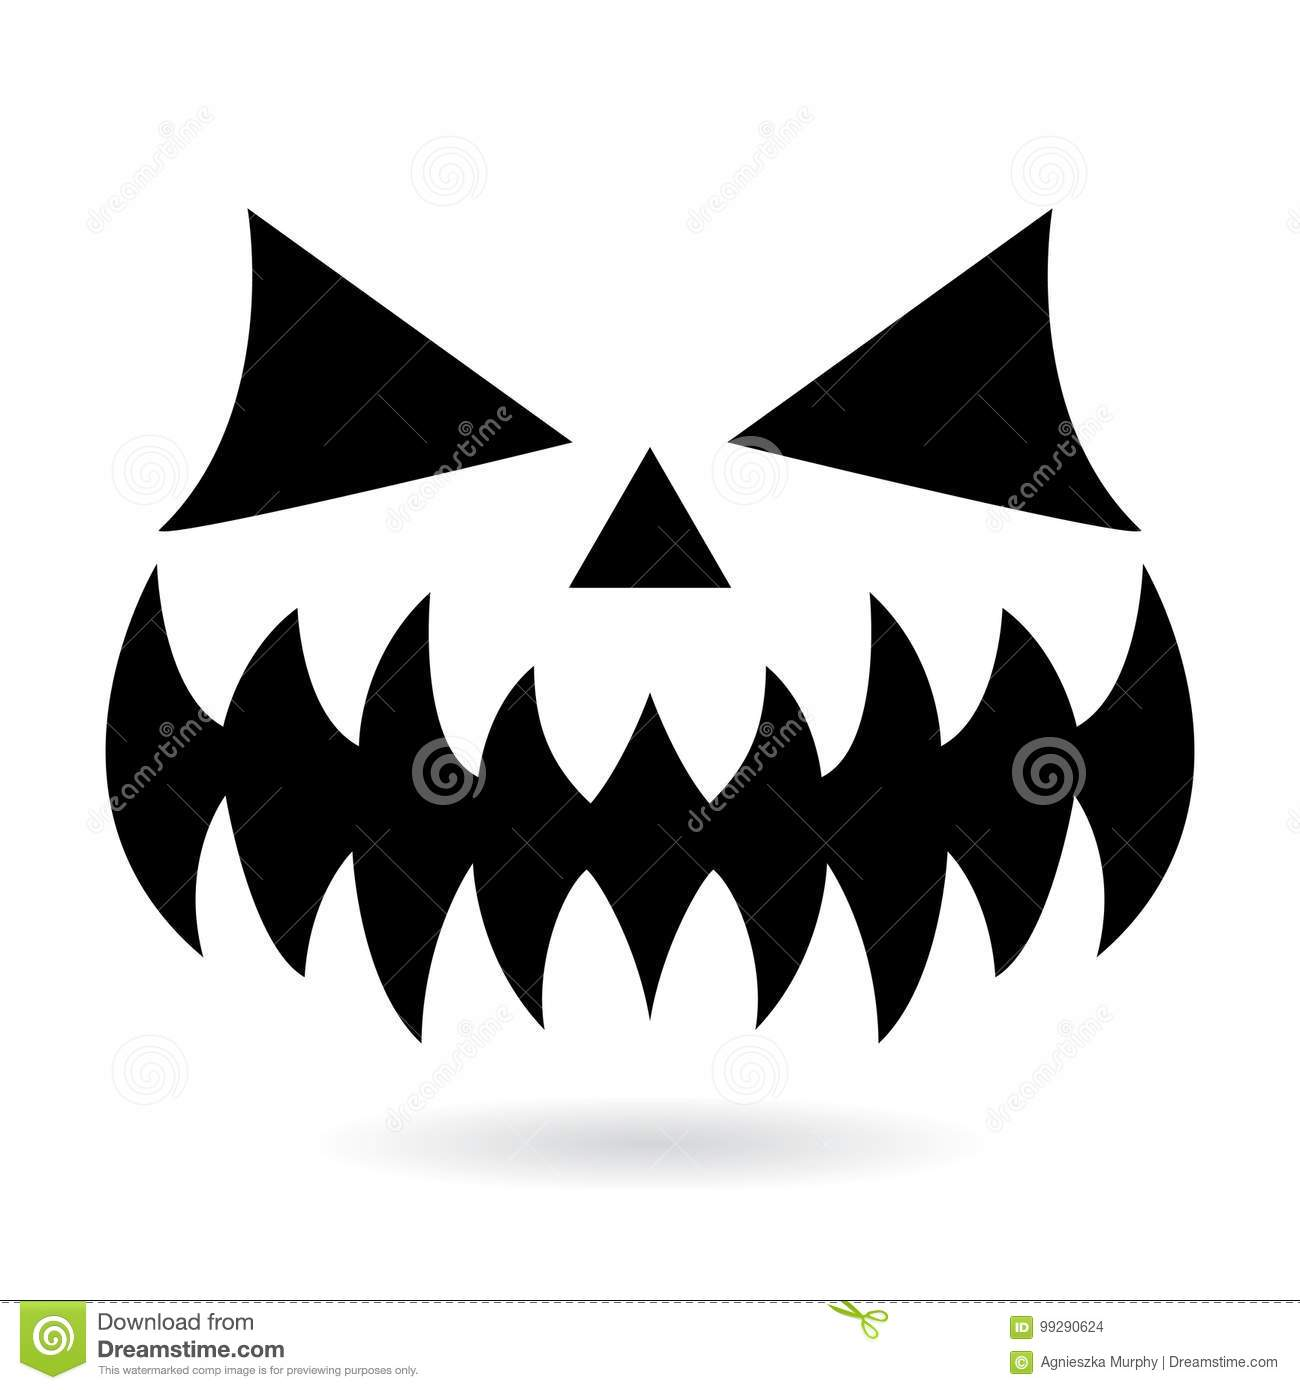 scary halloween pumpkin face vector design, ghost or monster mouth